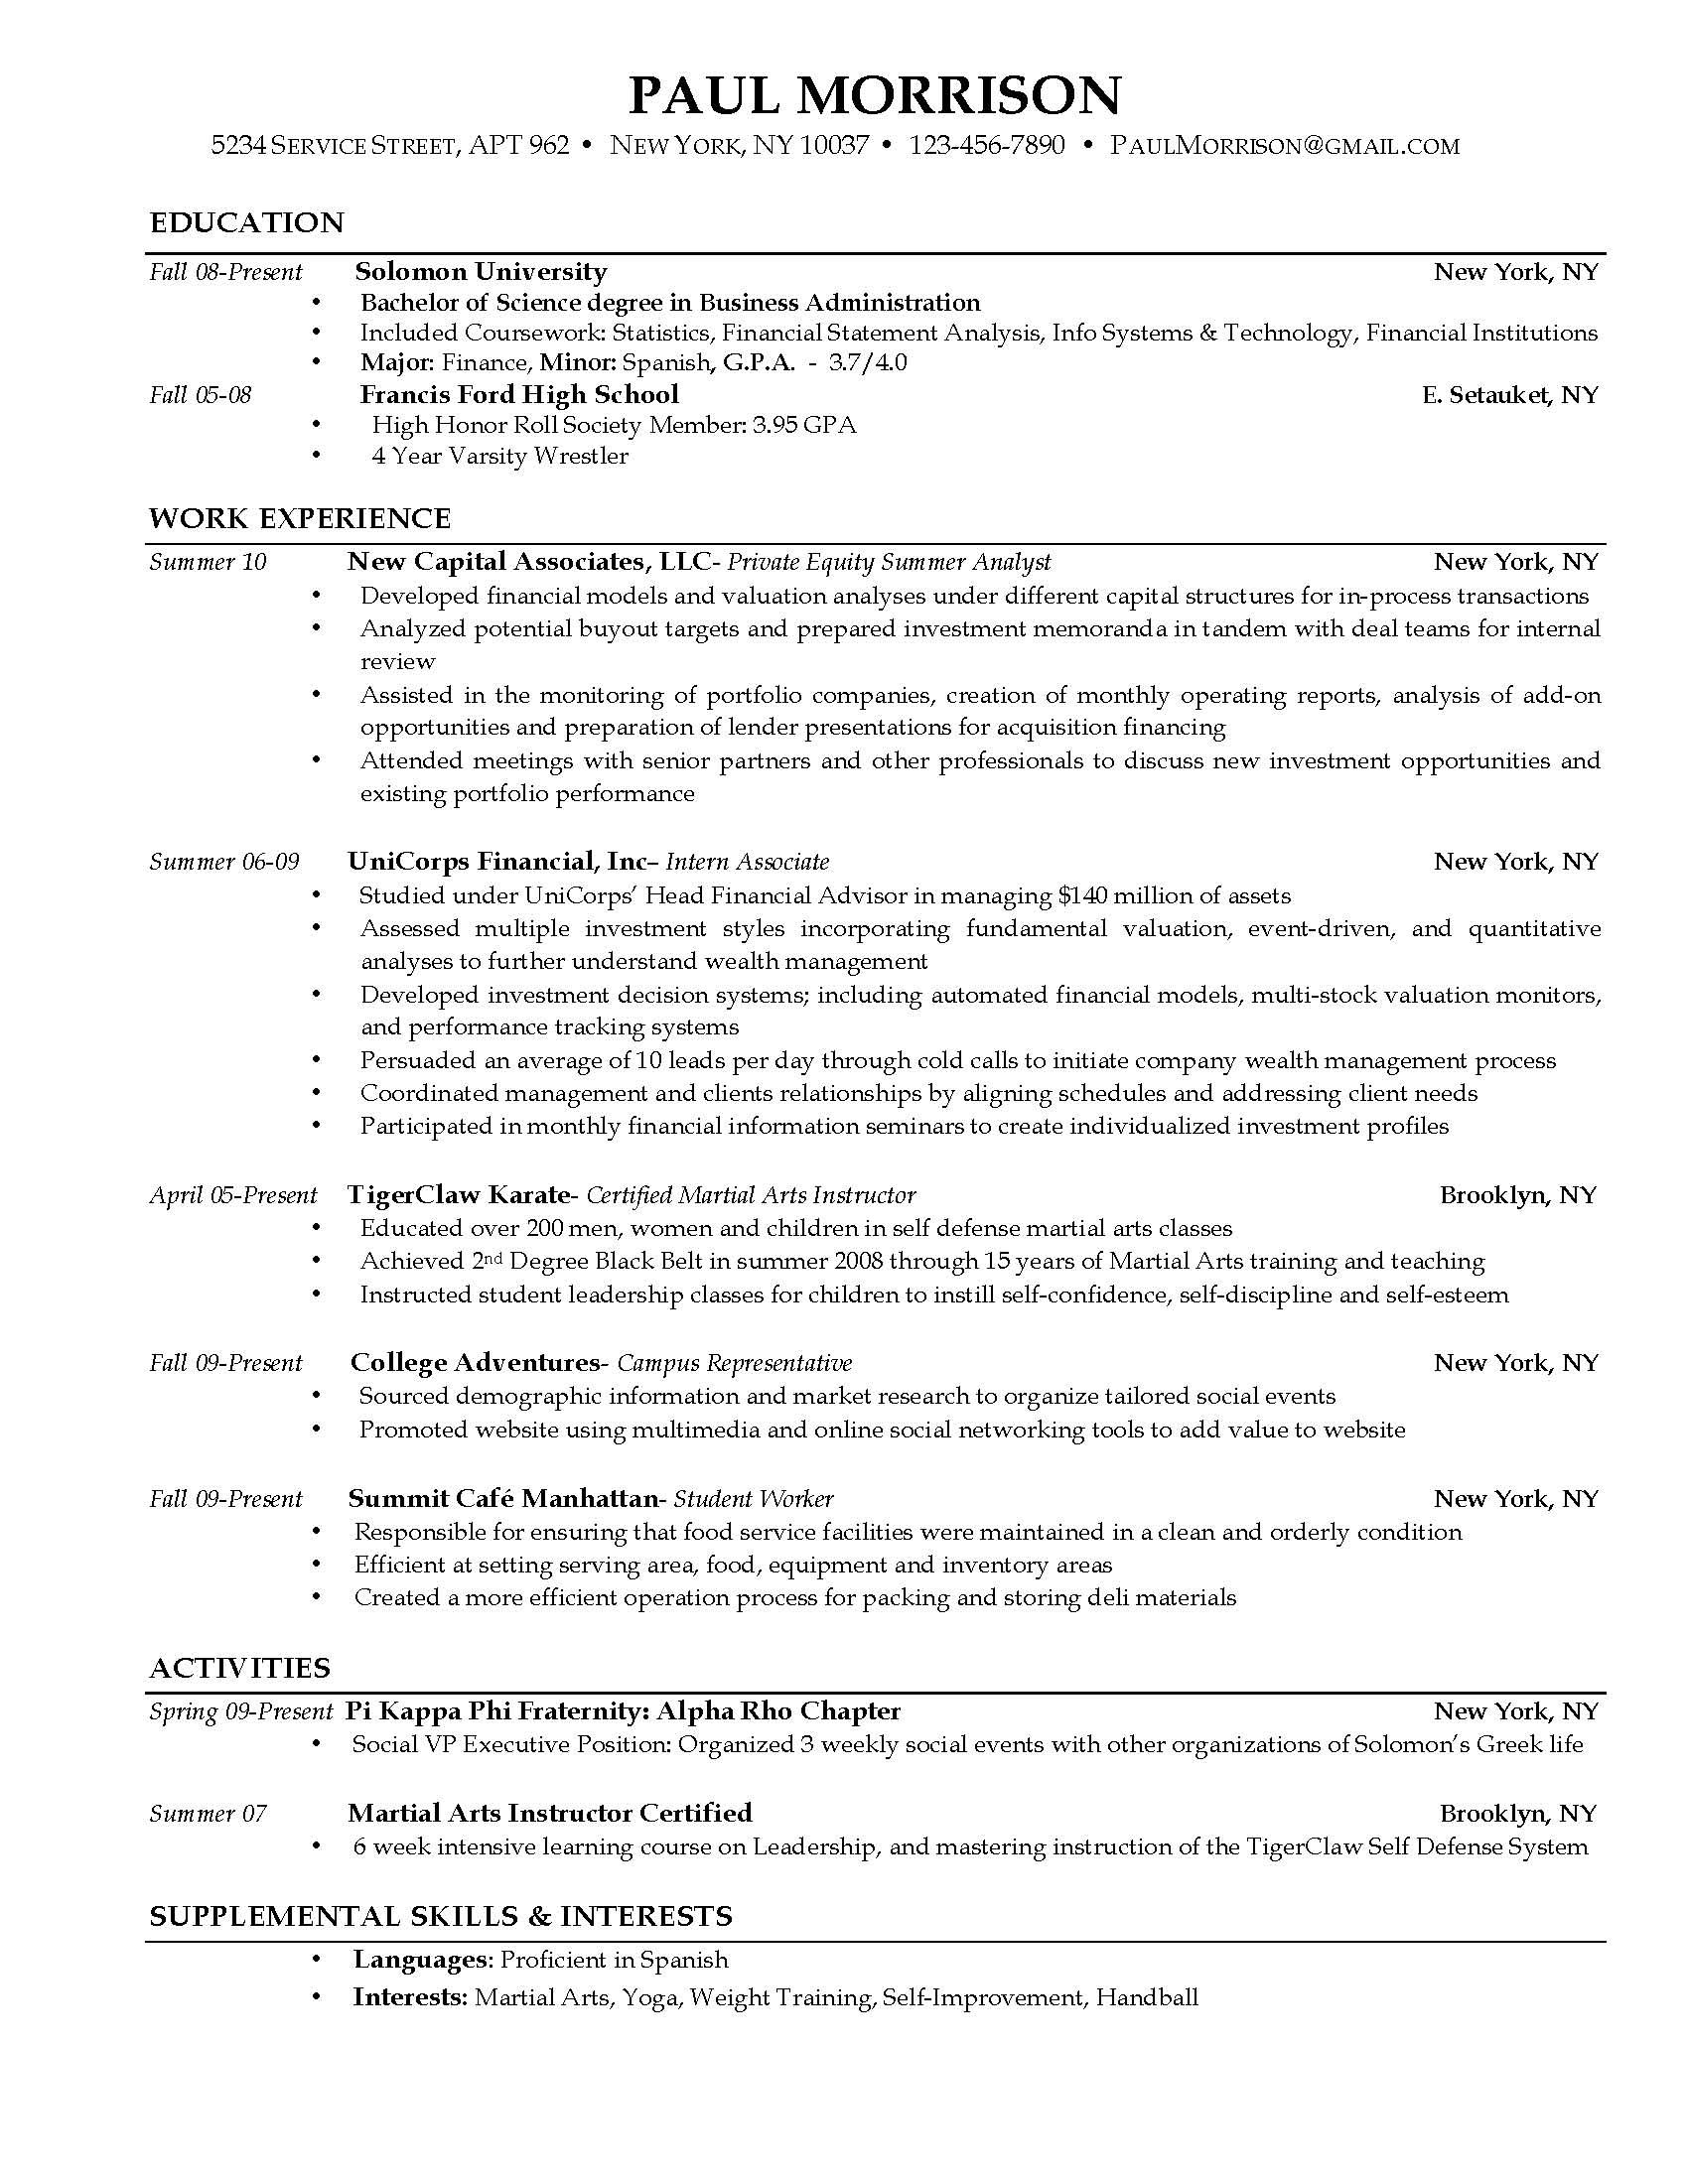 Research Skills Resume Here Example Resume Current College Student Sample Job Tips Skills